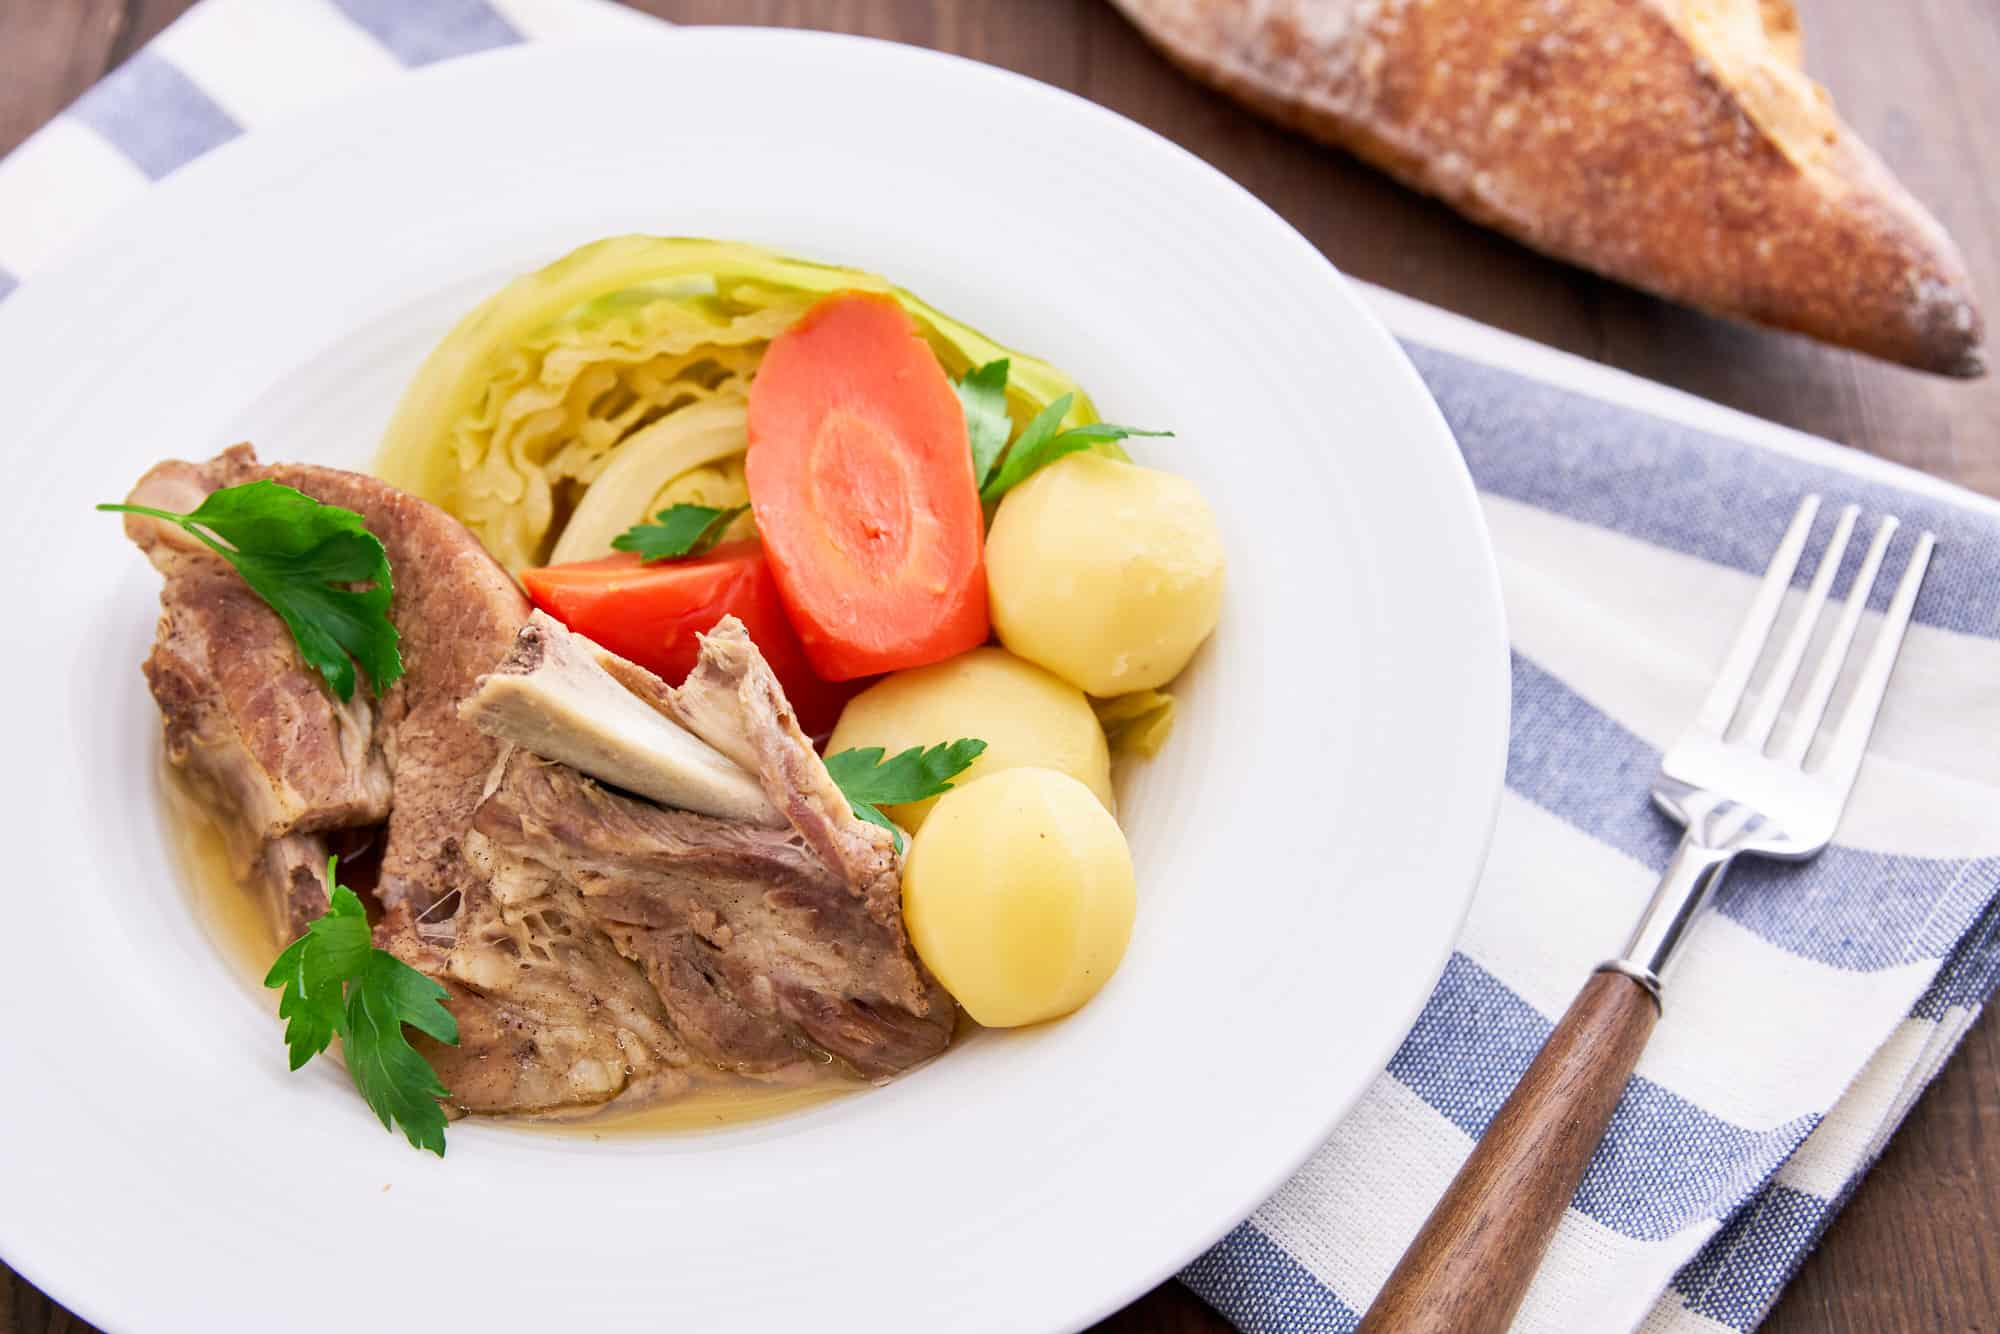 Curing the spareribs for a few days in a simple dry brine makes this Pot au Feu recipe ridiculously flavorful.